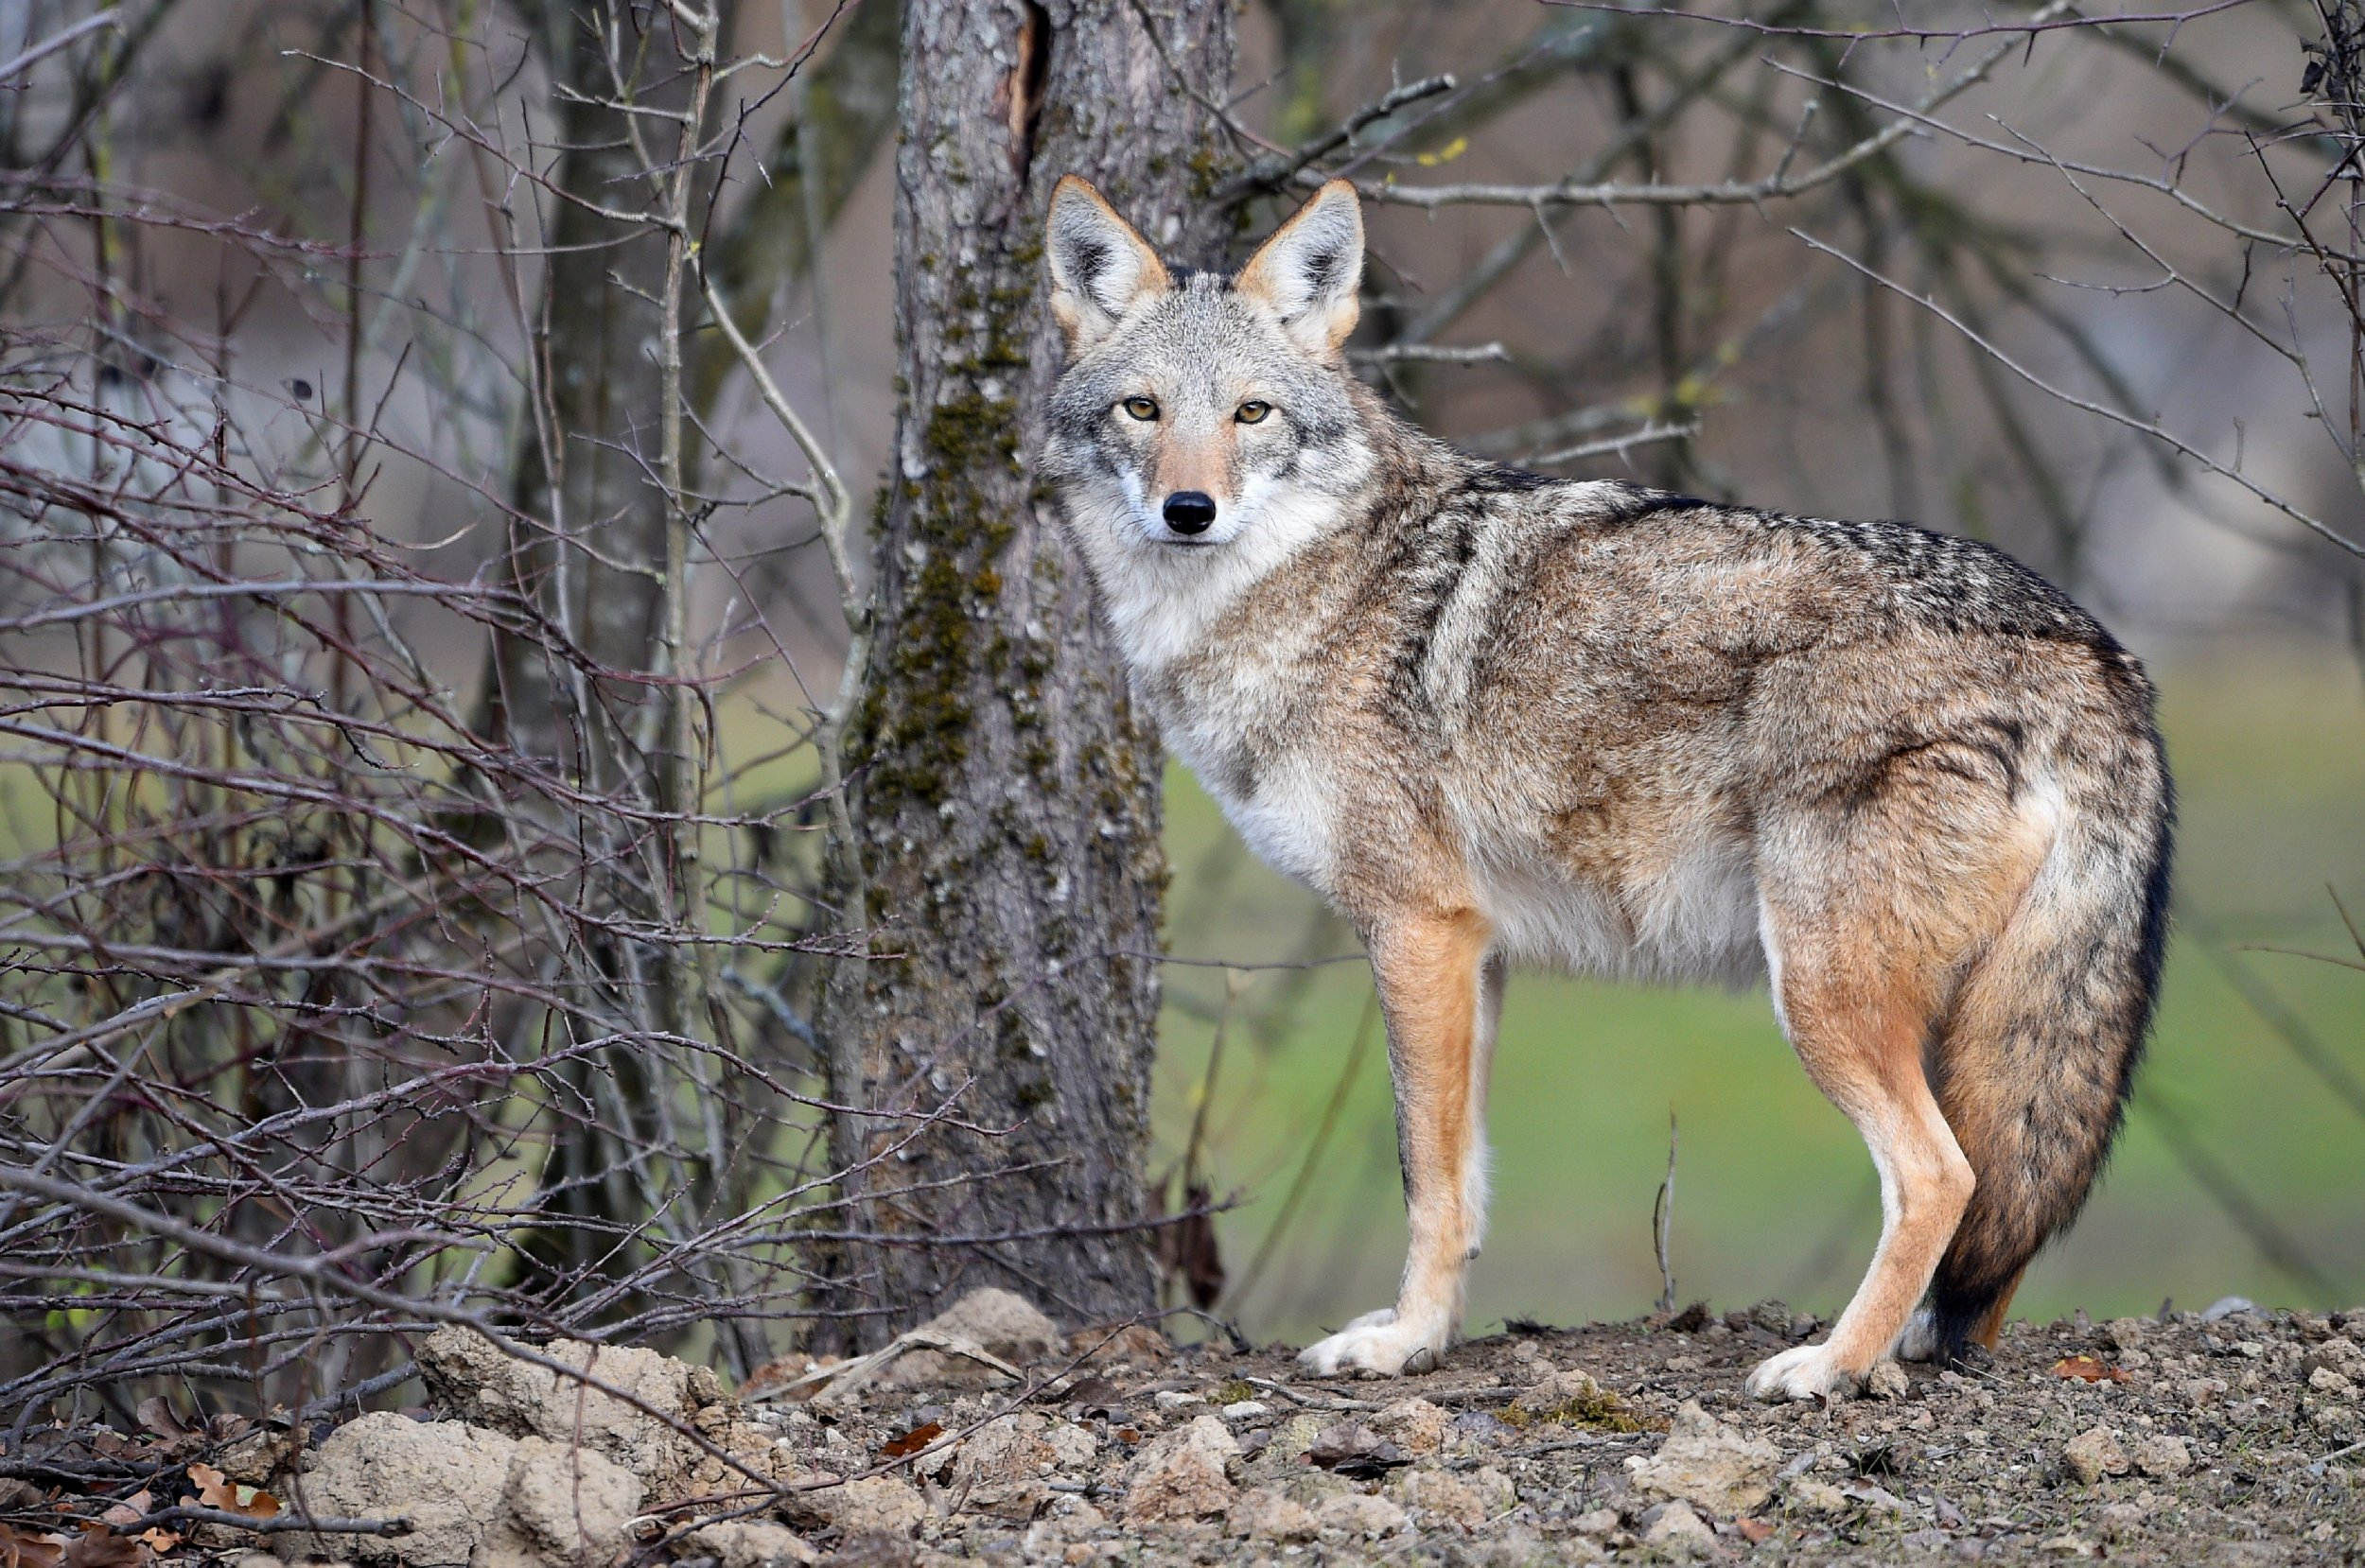 Florida Man Uses Coffee Cup to Fight Off Wild Coyote, Runs it Over